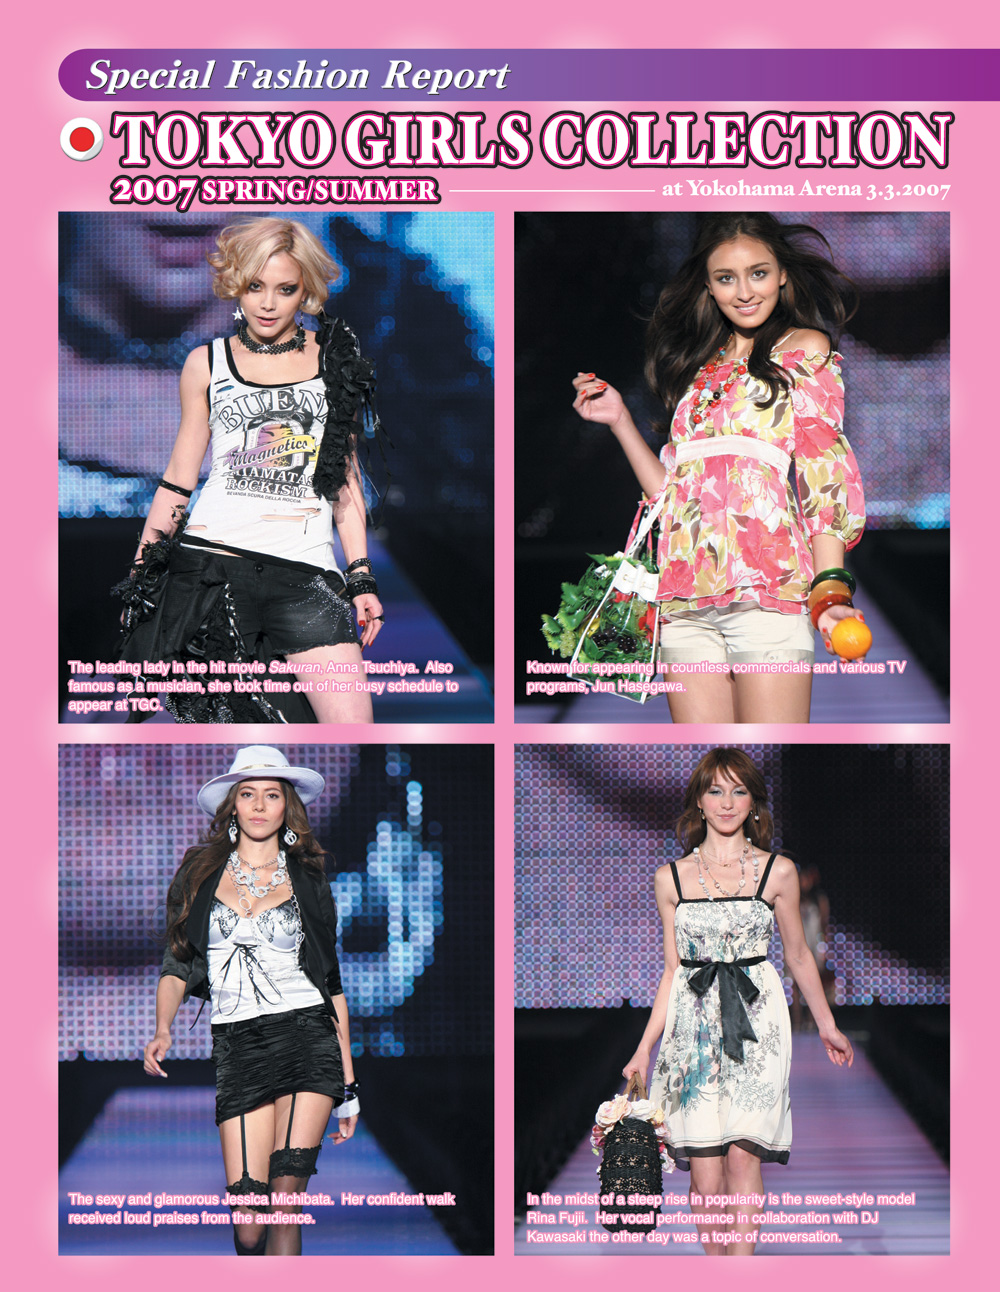 TOKYO GIRLS COLLECTION 2007 S&S